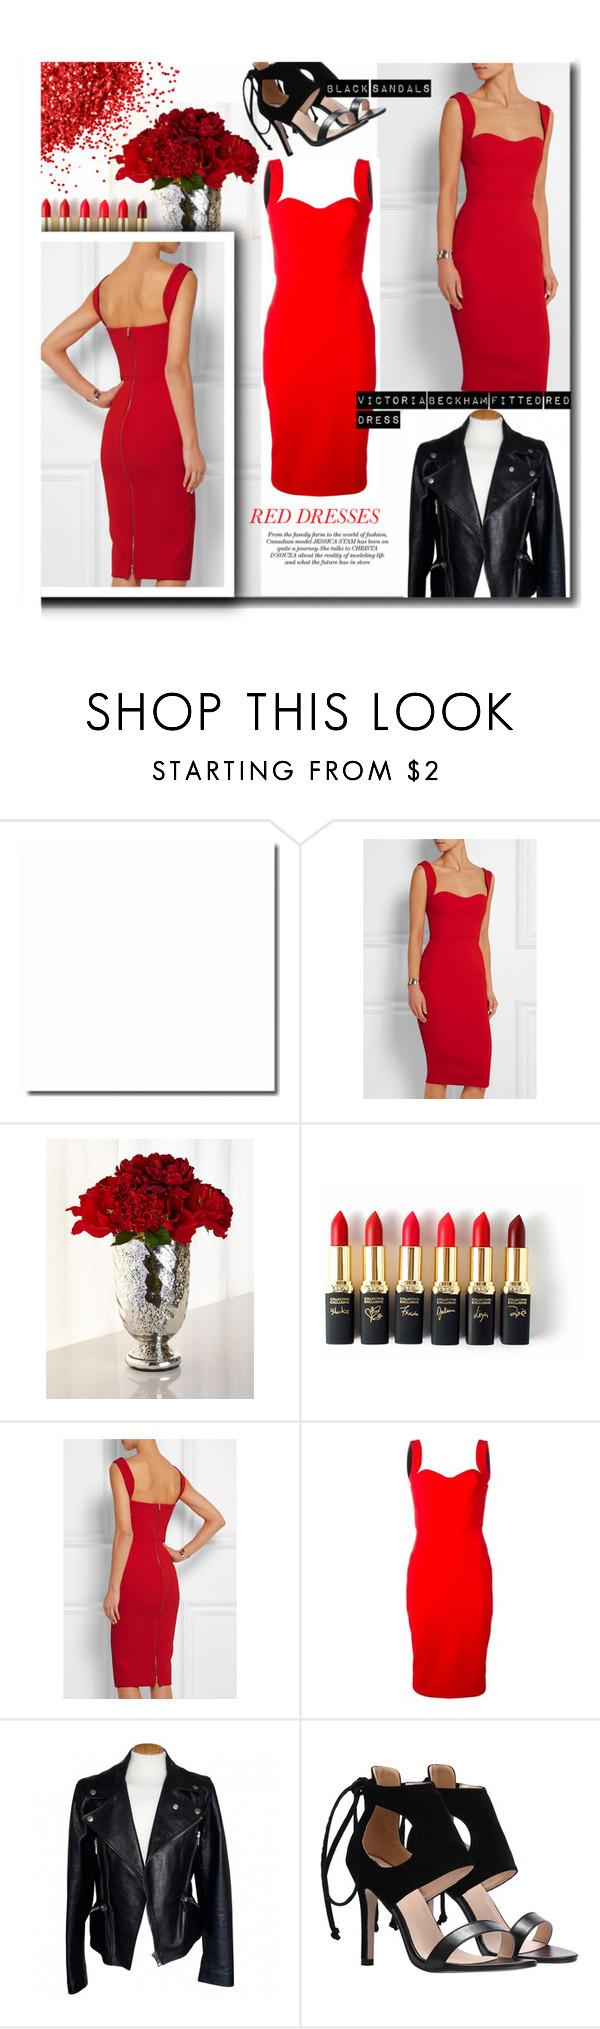 """#reddress"" by zoey-heart ❤ liked on Polyvore featuring Victoria Beckham, John-Richard, L'Oréal Paris, Alexander McQueen, women's clothing, women, female, woman, misses and juniors"